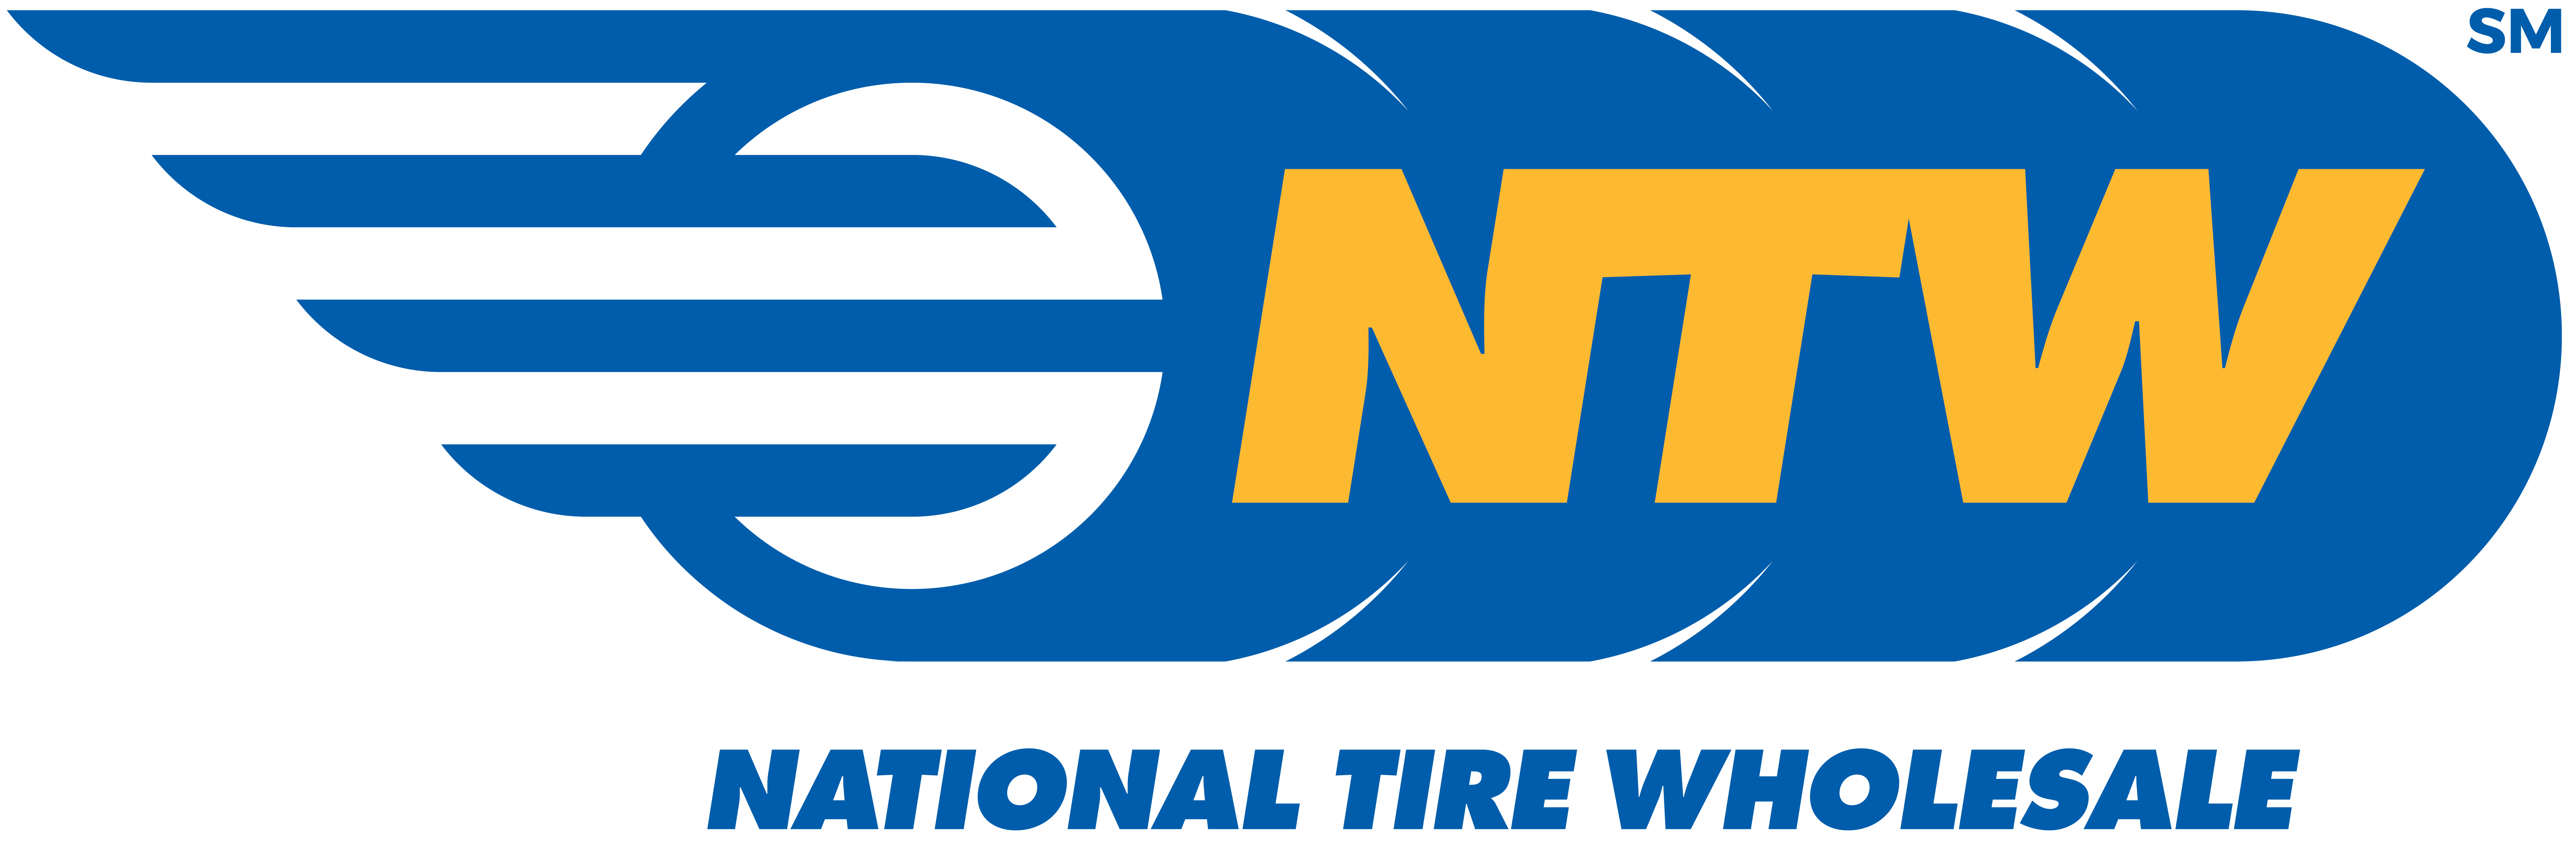 Tire Wholesale Warehouse >> Ntwonline